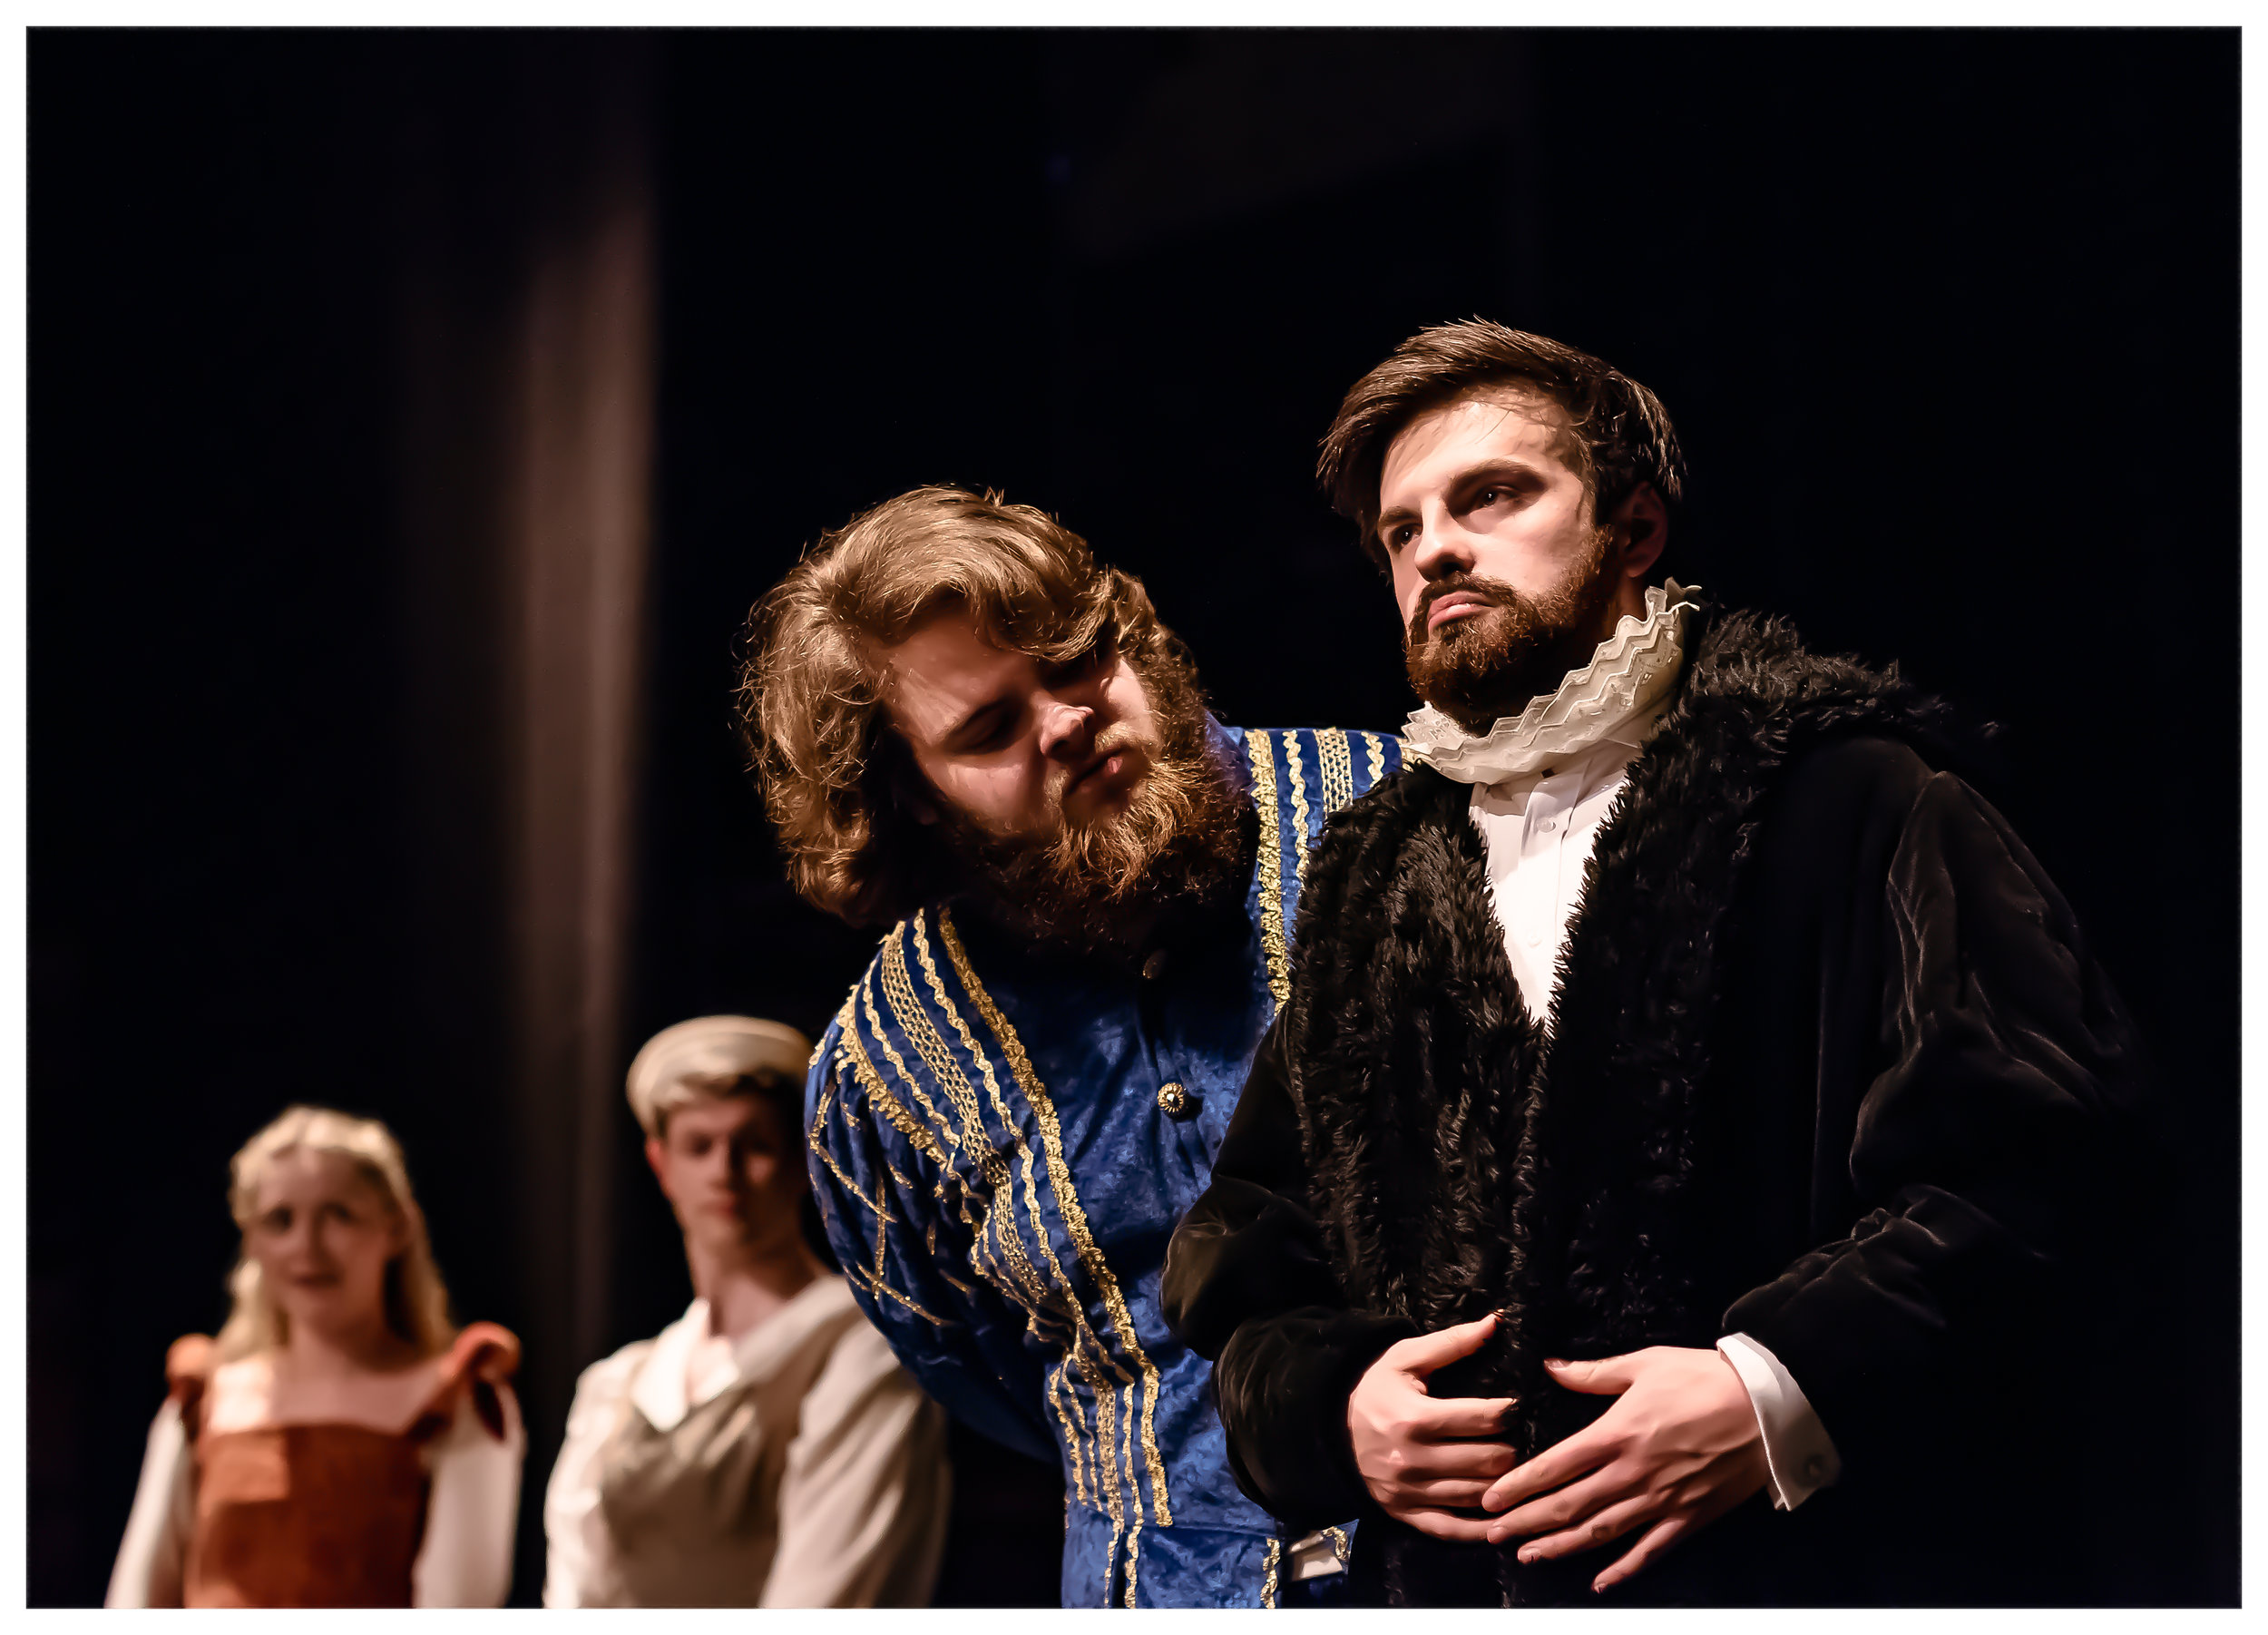 GS_12thNight_DressRun_2.jpg